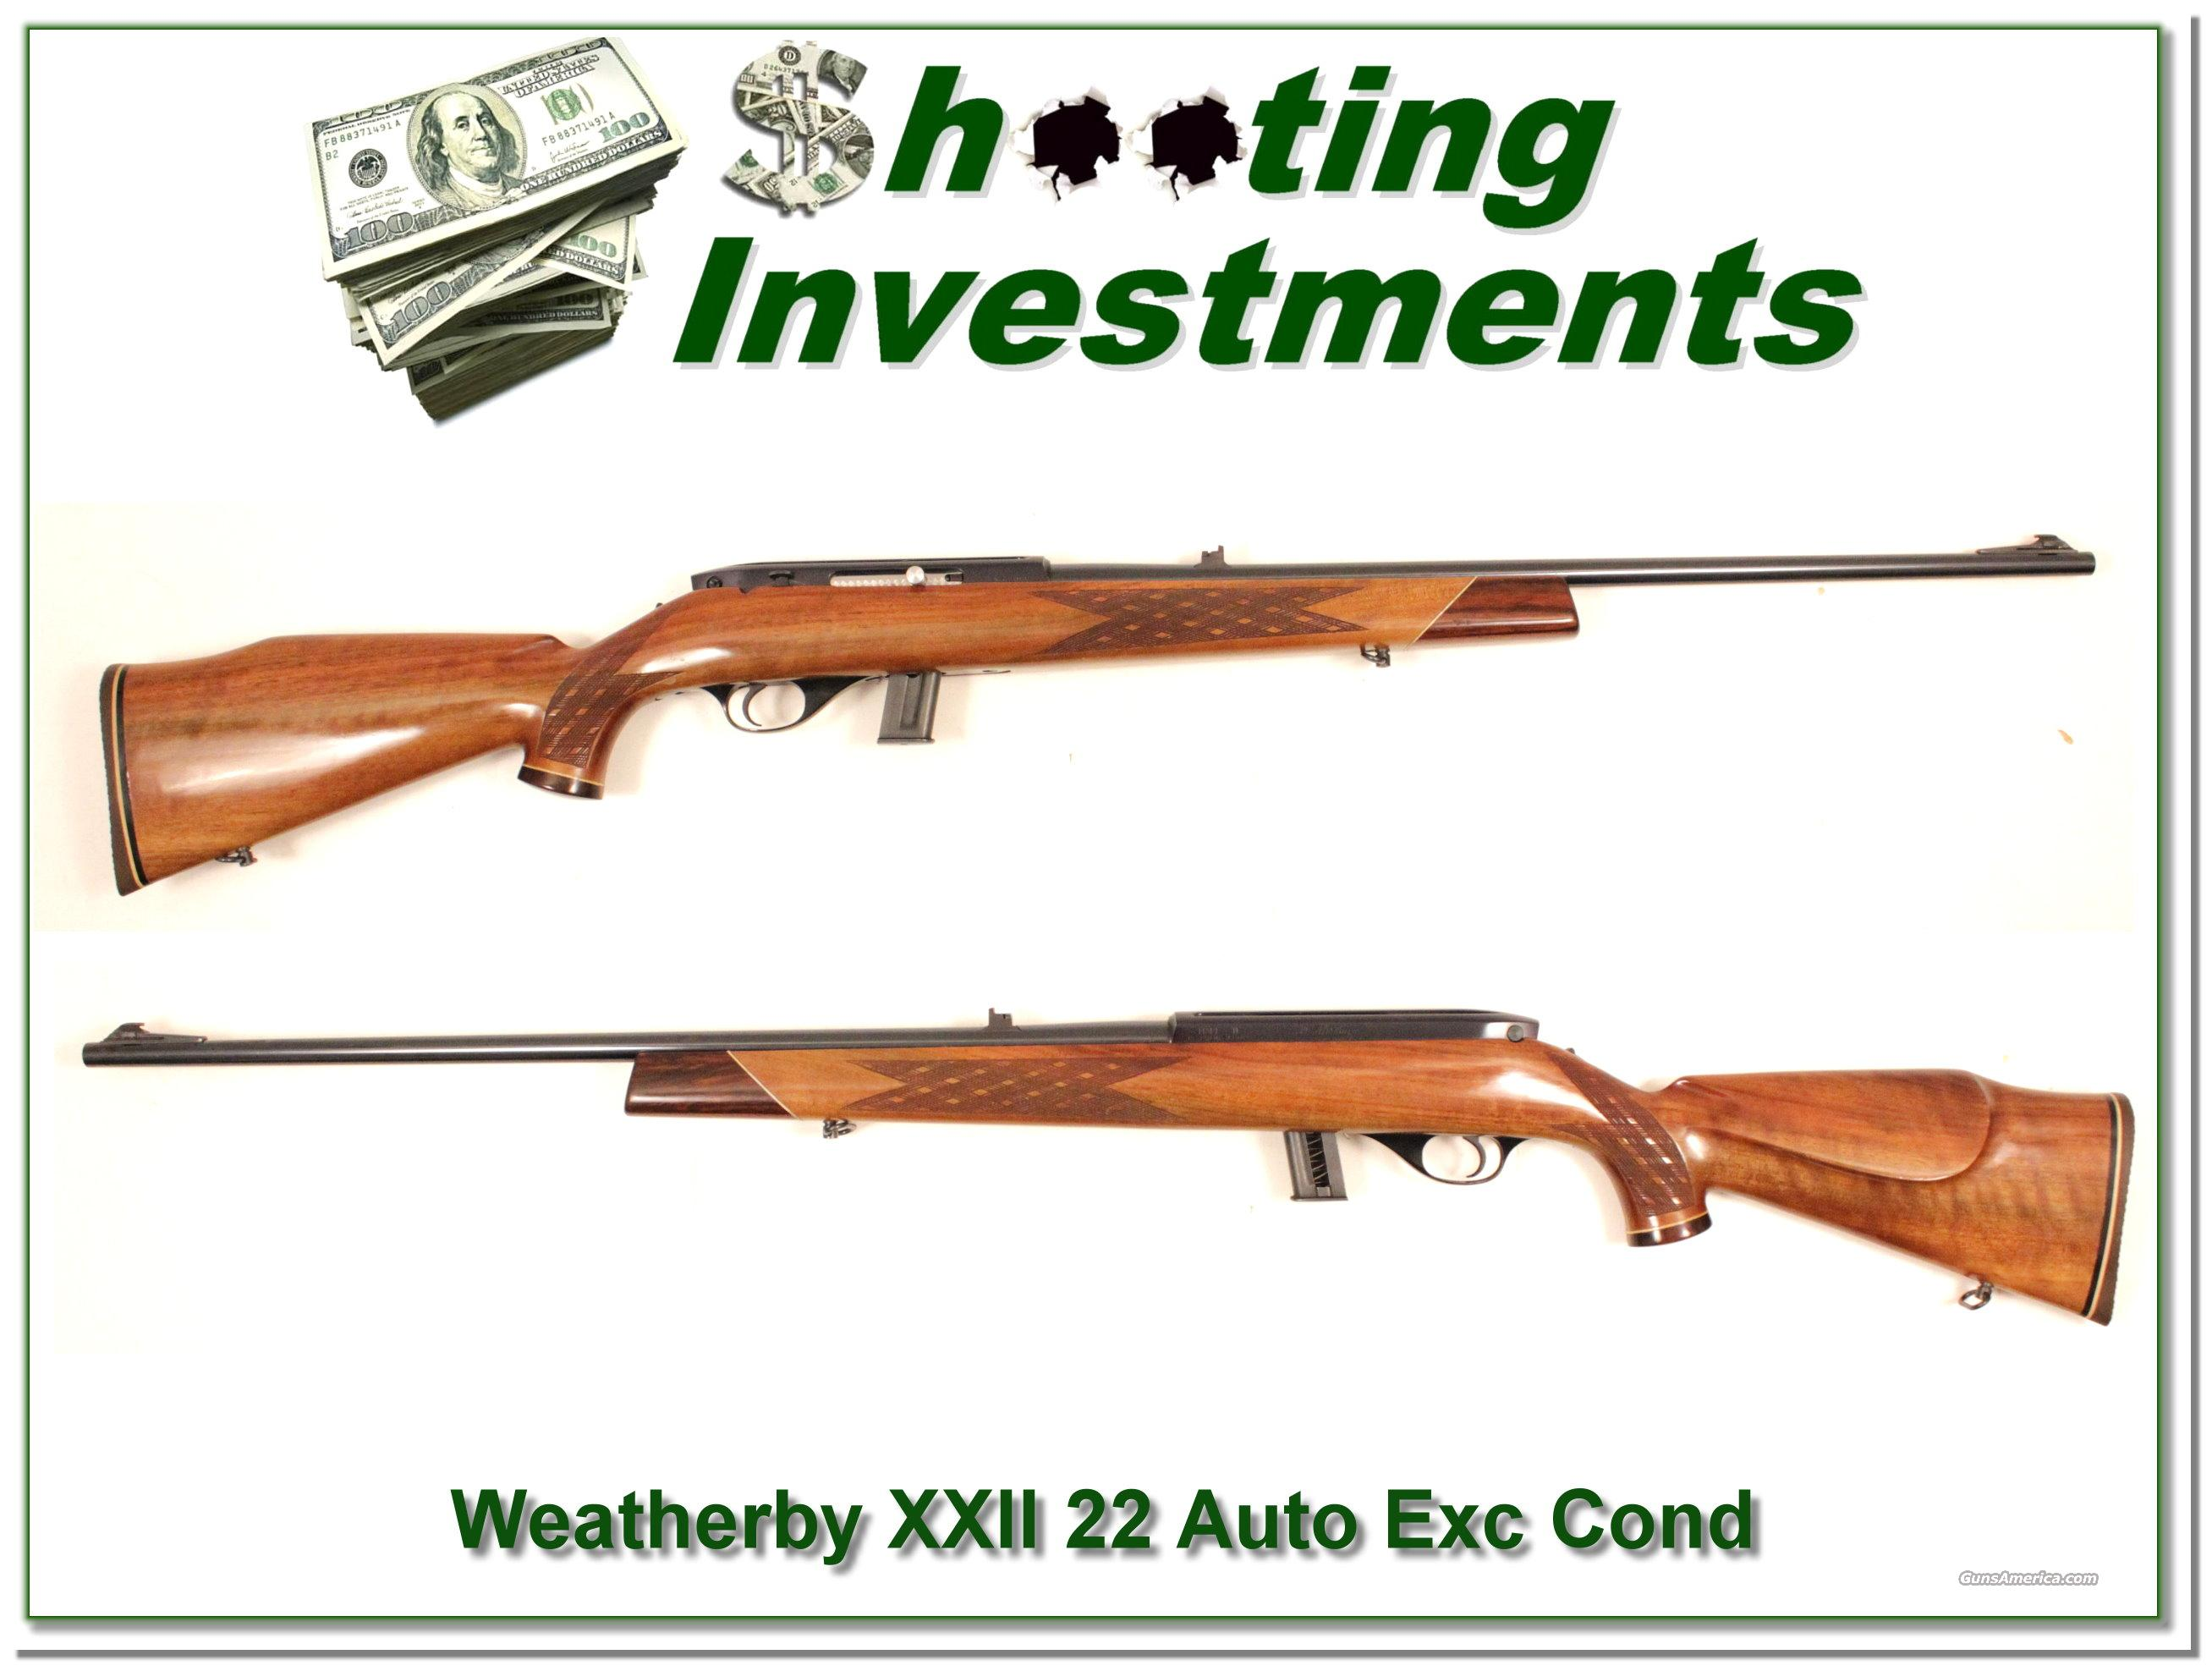 Weatherby Mark XXII Deluxe Exc Cond!  Guns > Rifles > Weatherby Rifles > Sporting